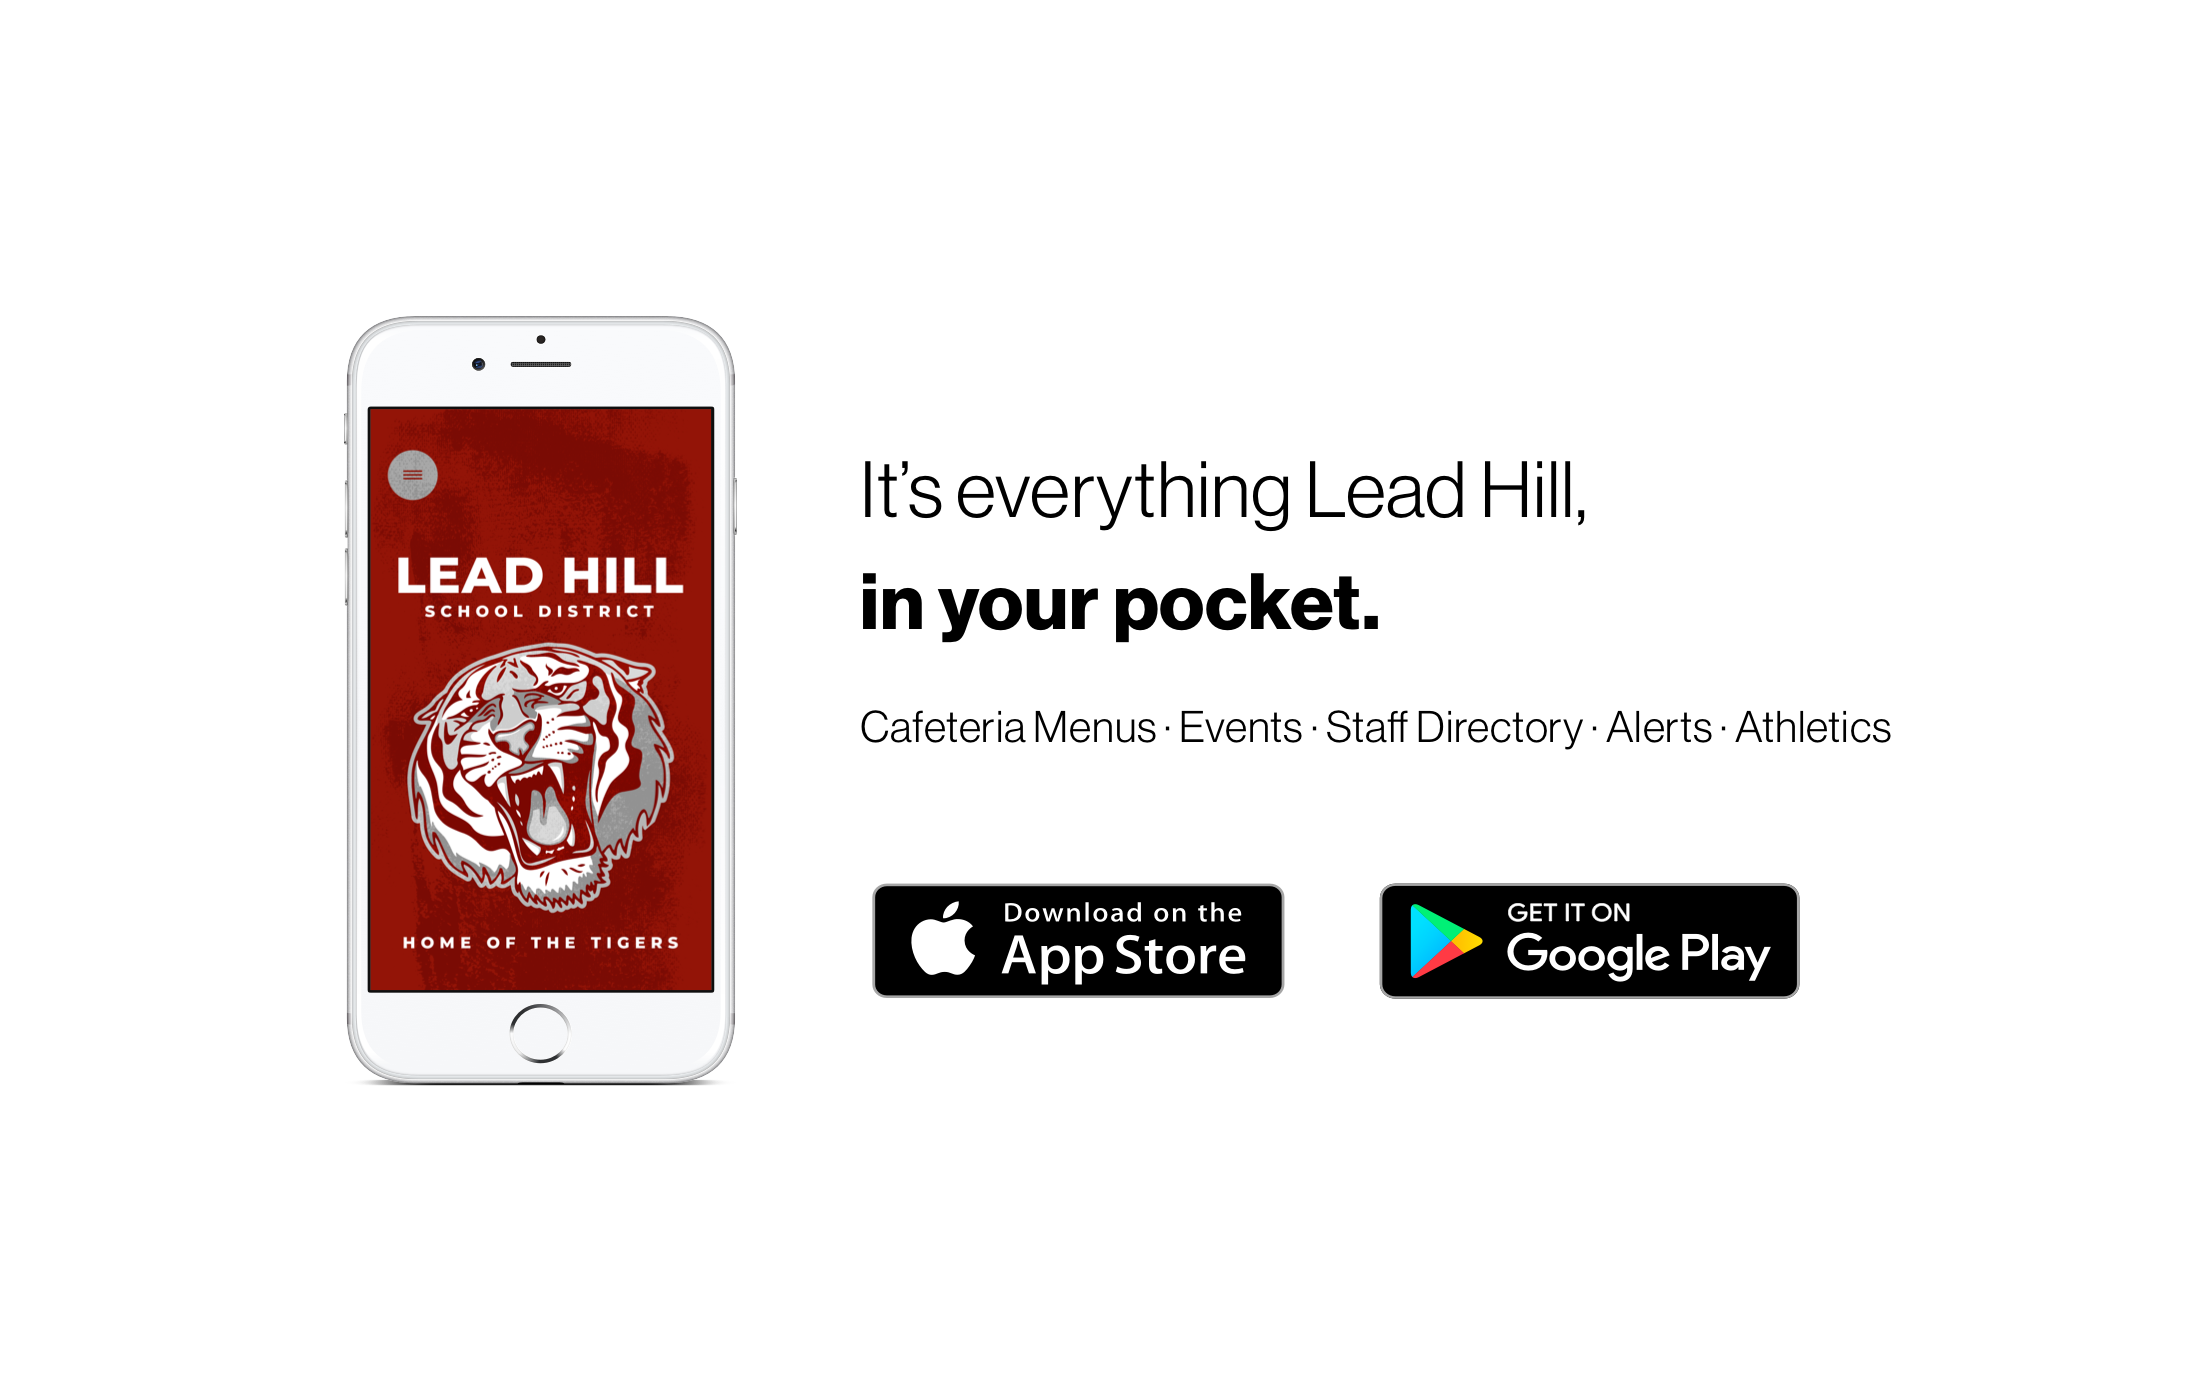 Download our new mobile app! It's everything Lead Hill in your pocket.